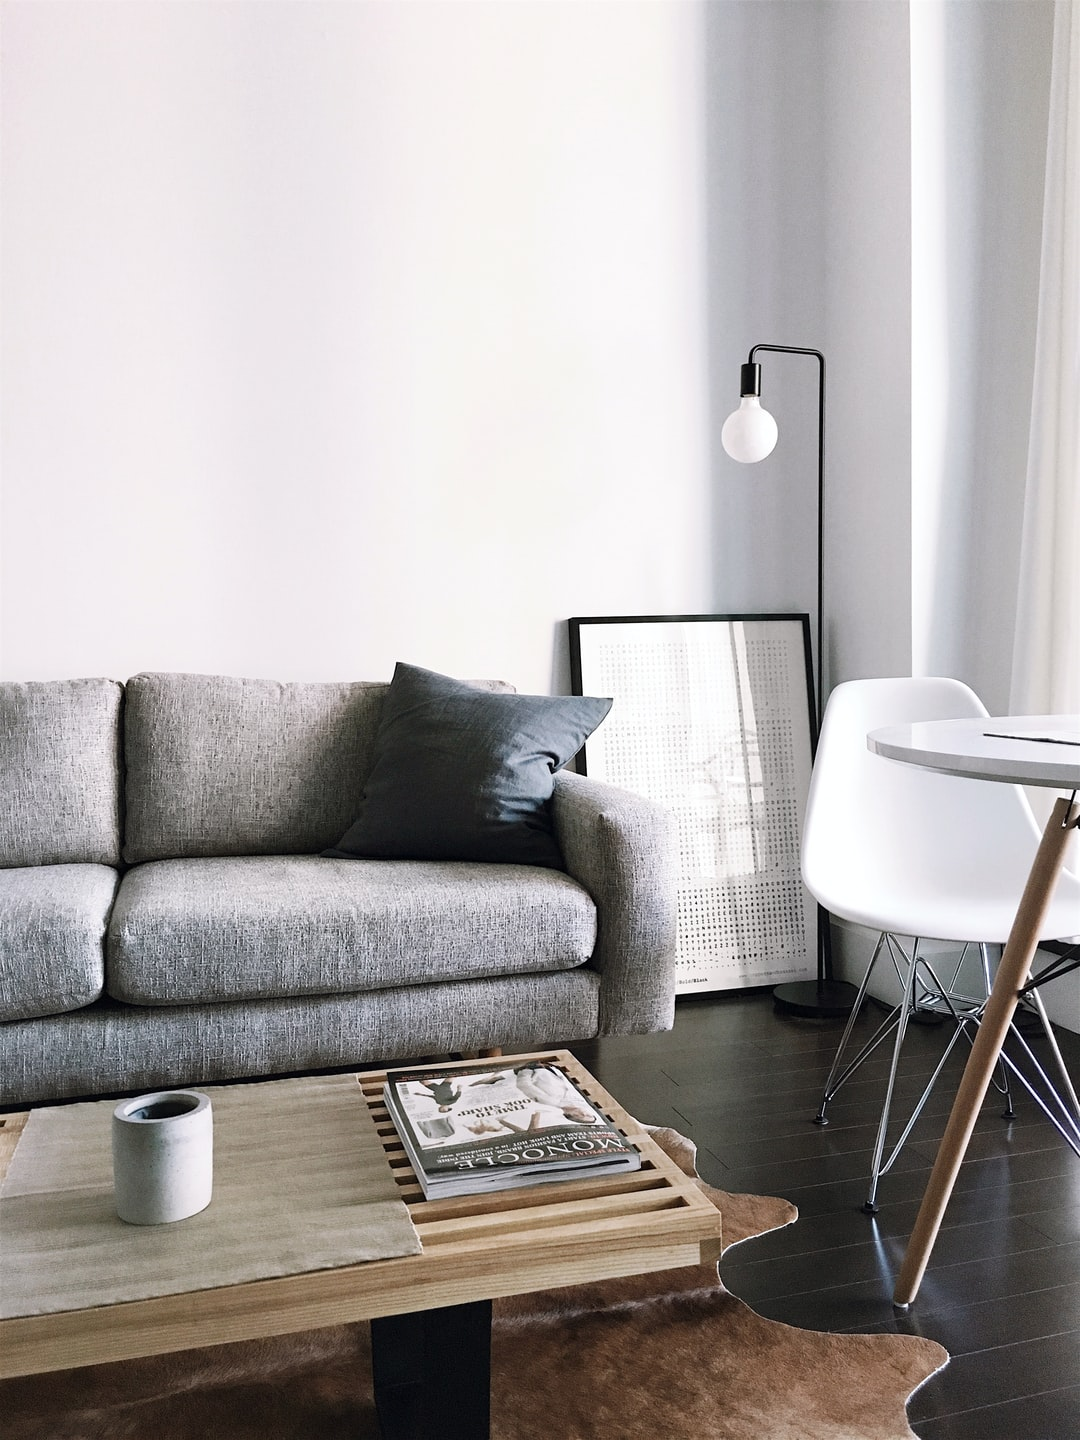 20 best free interior pictures on unsplash - Interior design for a small living room ...